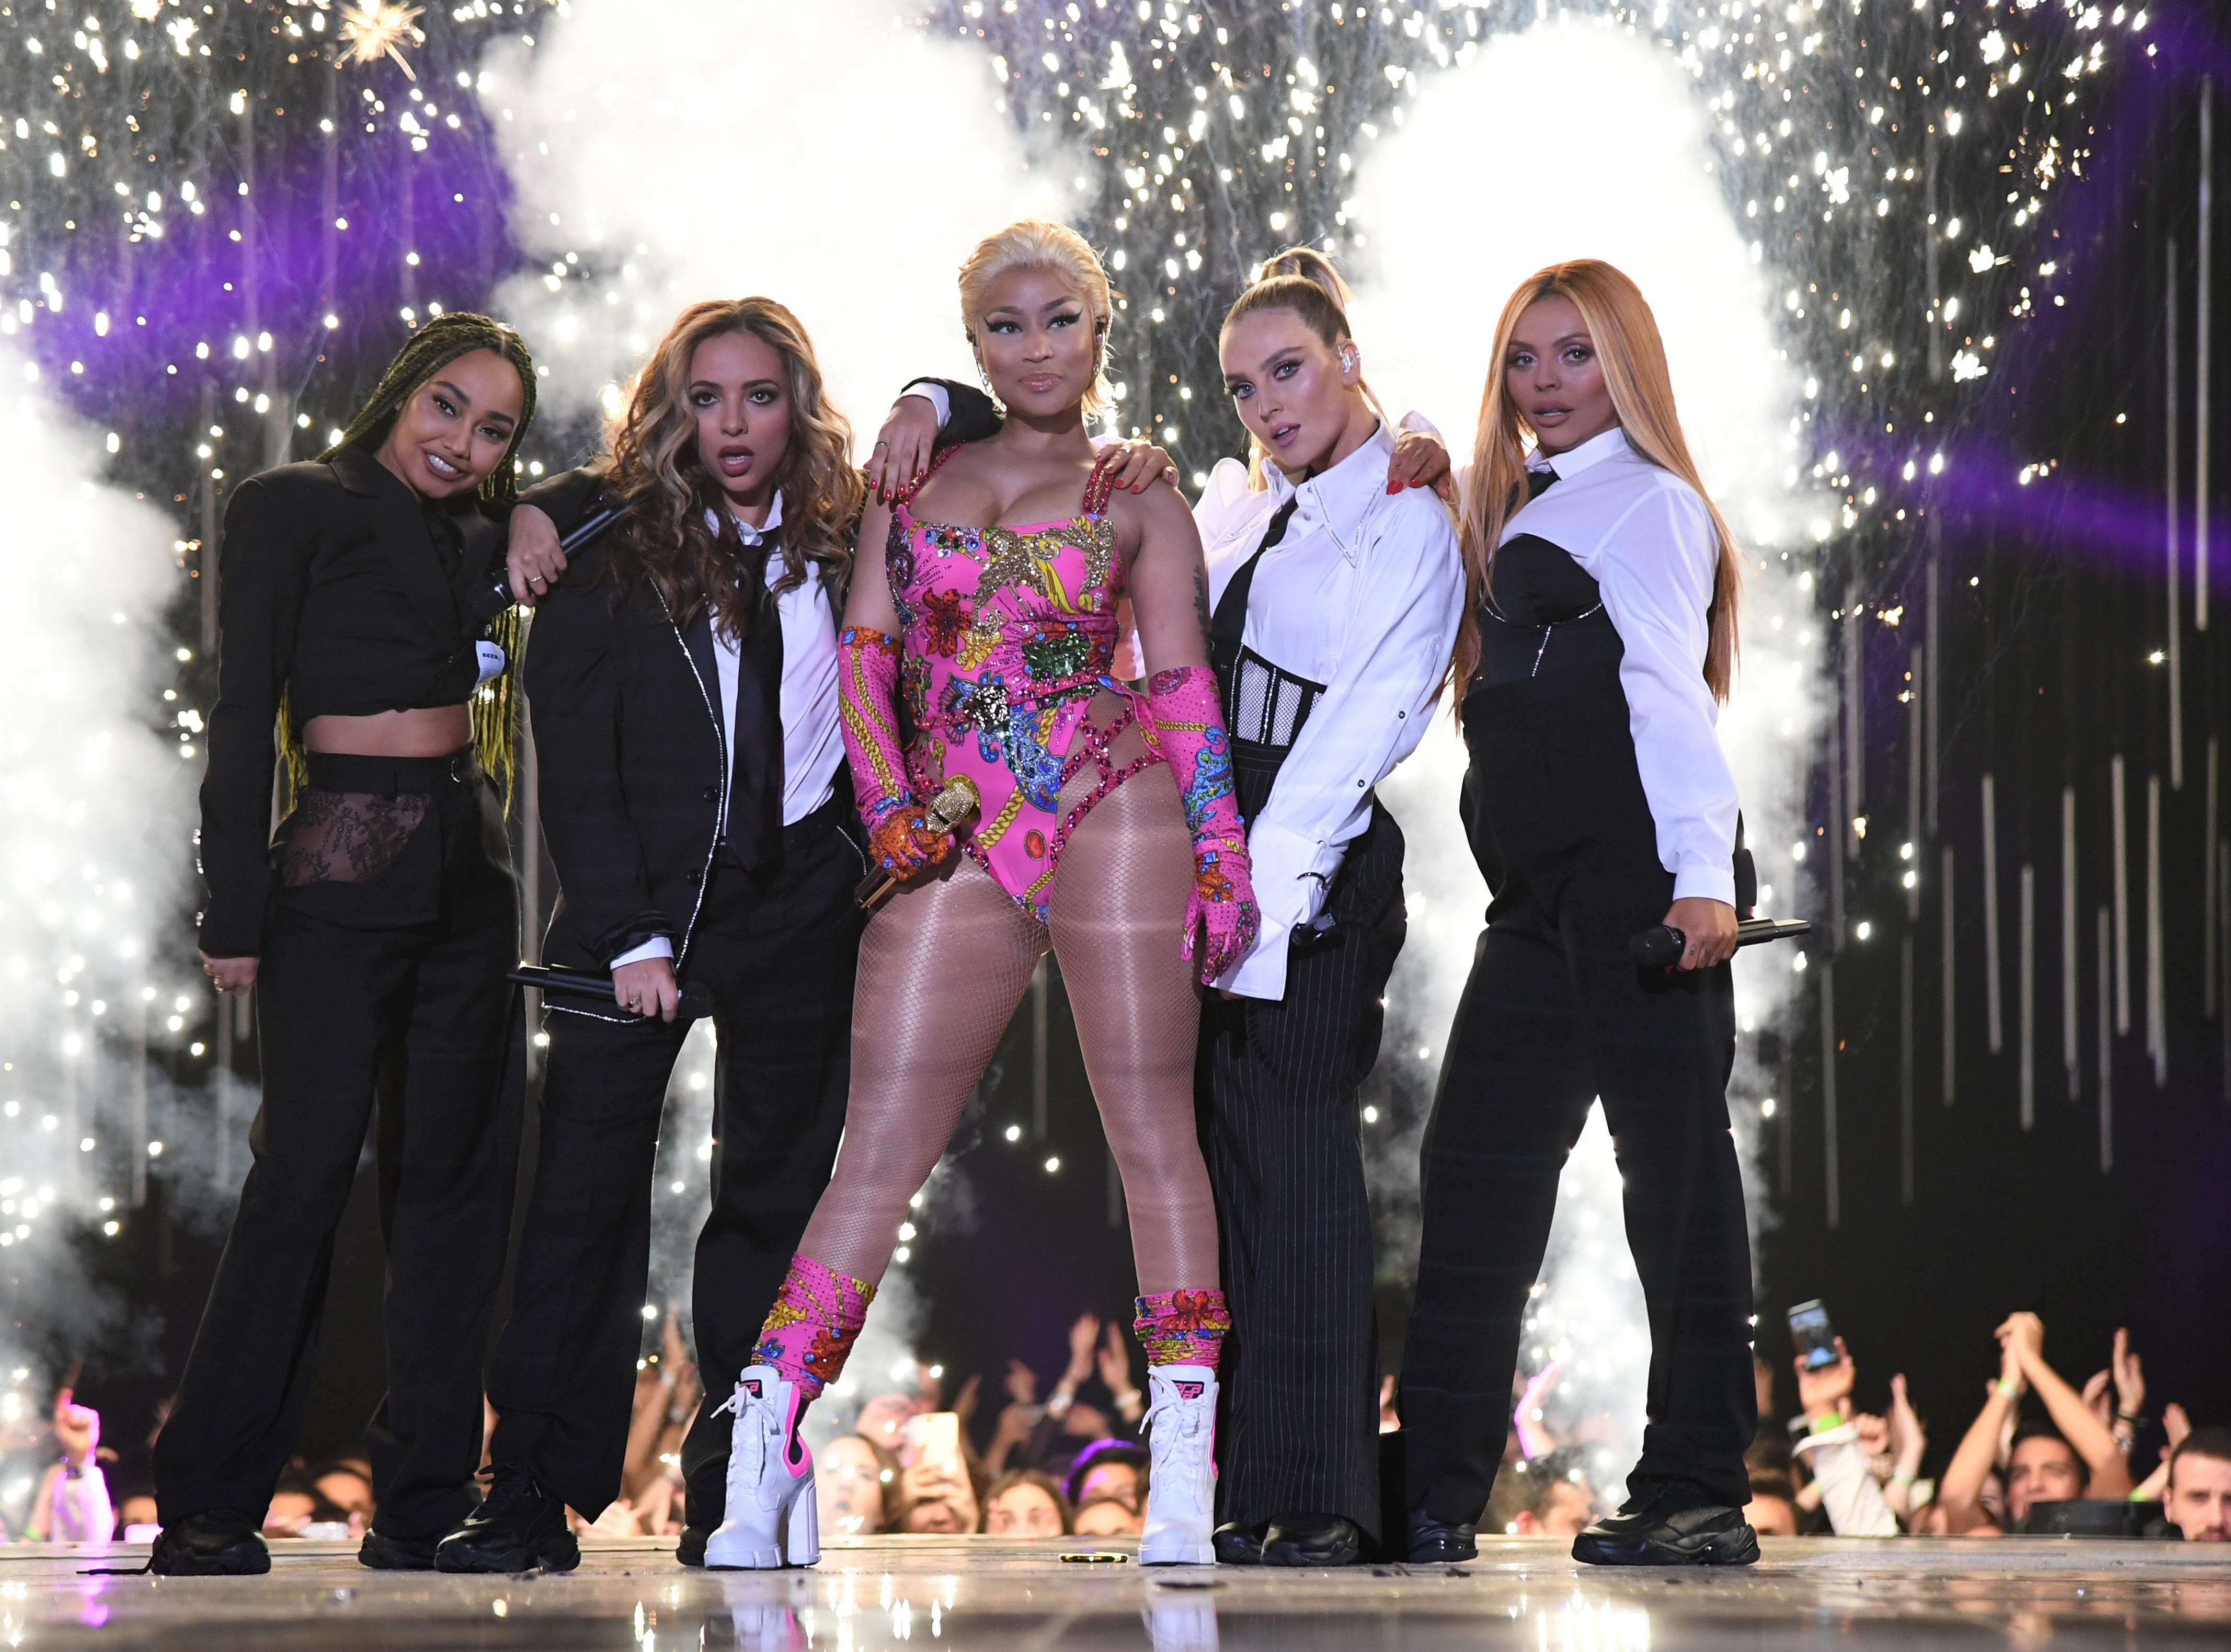 BILBAO, SPAIN - NOVEMBER 04:  Nicki Minaj and Little Mix perform on stage during the MTV EMAs 2018 at Bilbao Exhibition Centre on November 4, 2018 in Bilbao, Spain.  (Photo by Kevin Mazur/WireImage) ORG XMIT: 775097173 ORIG FILE ID: 1057315326